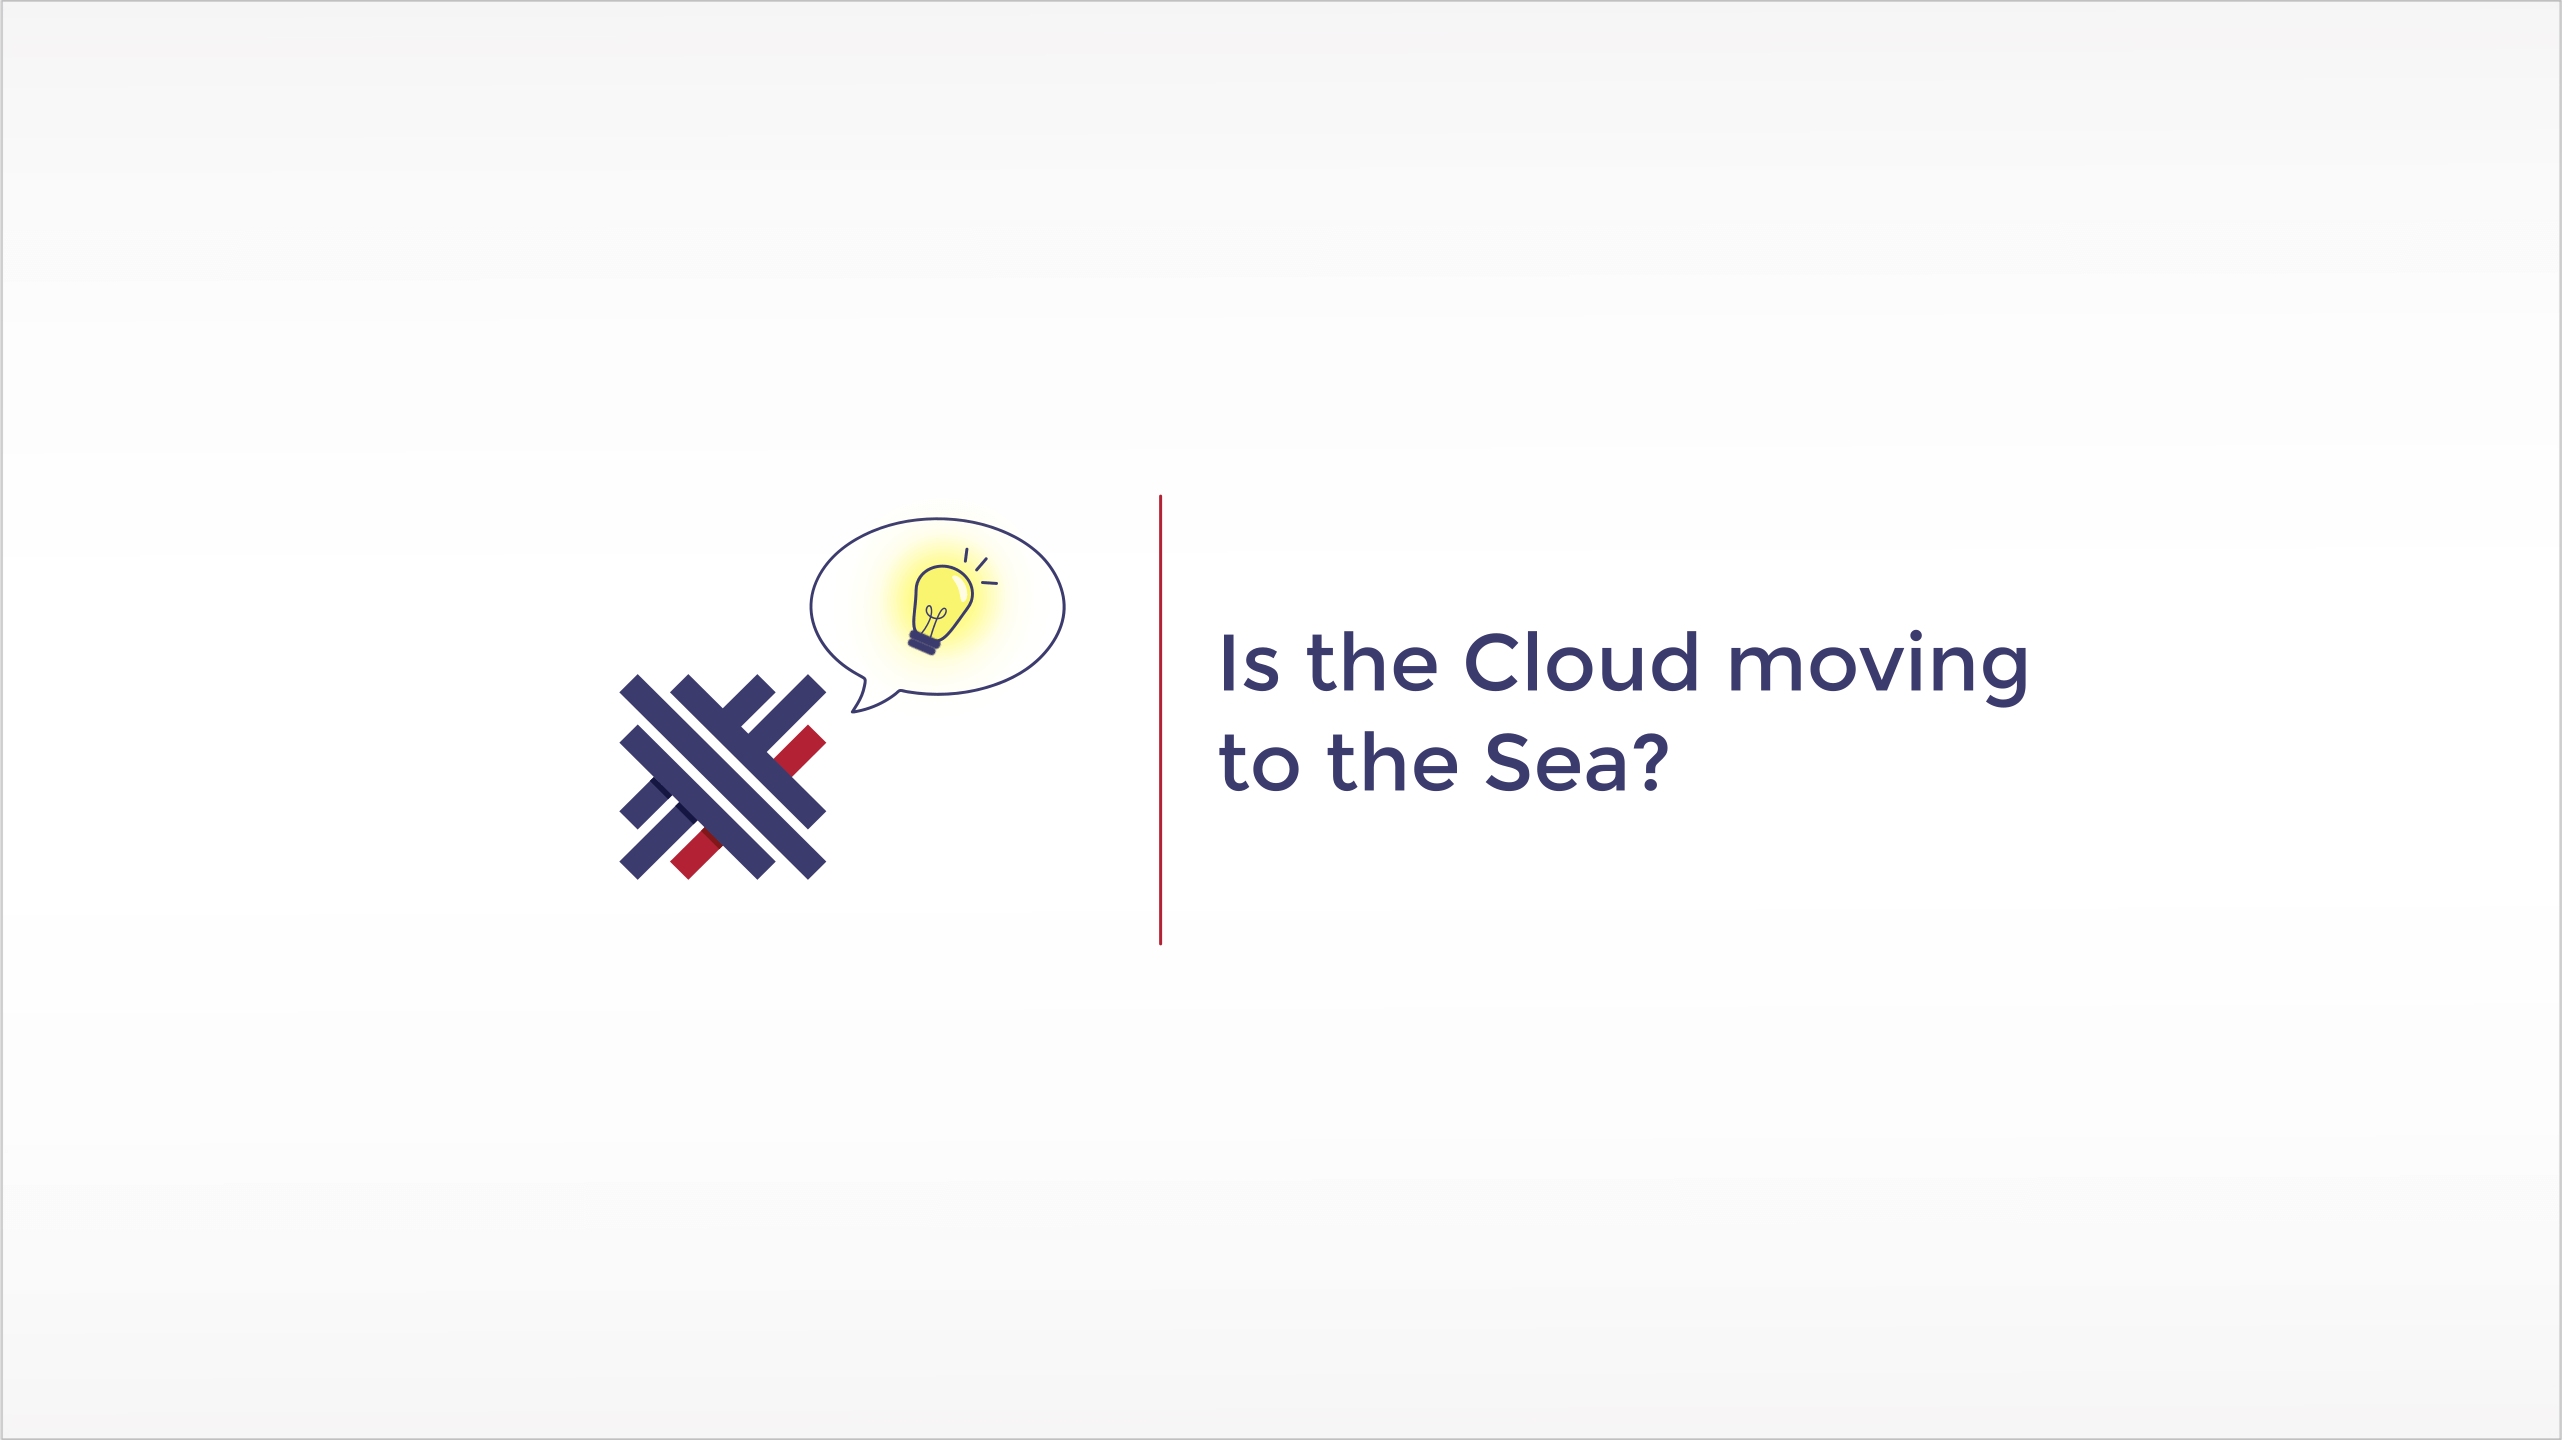 Is the cloud moving to the sea?